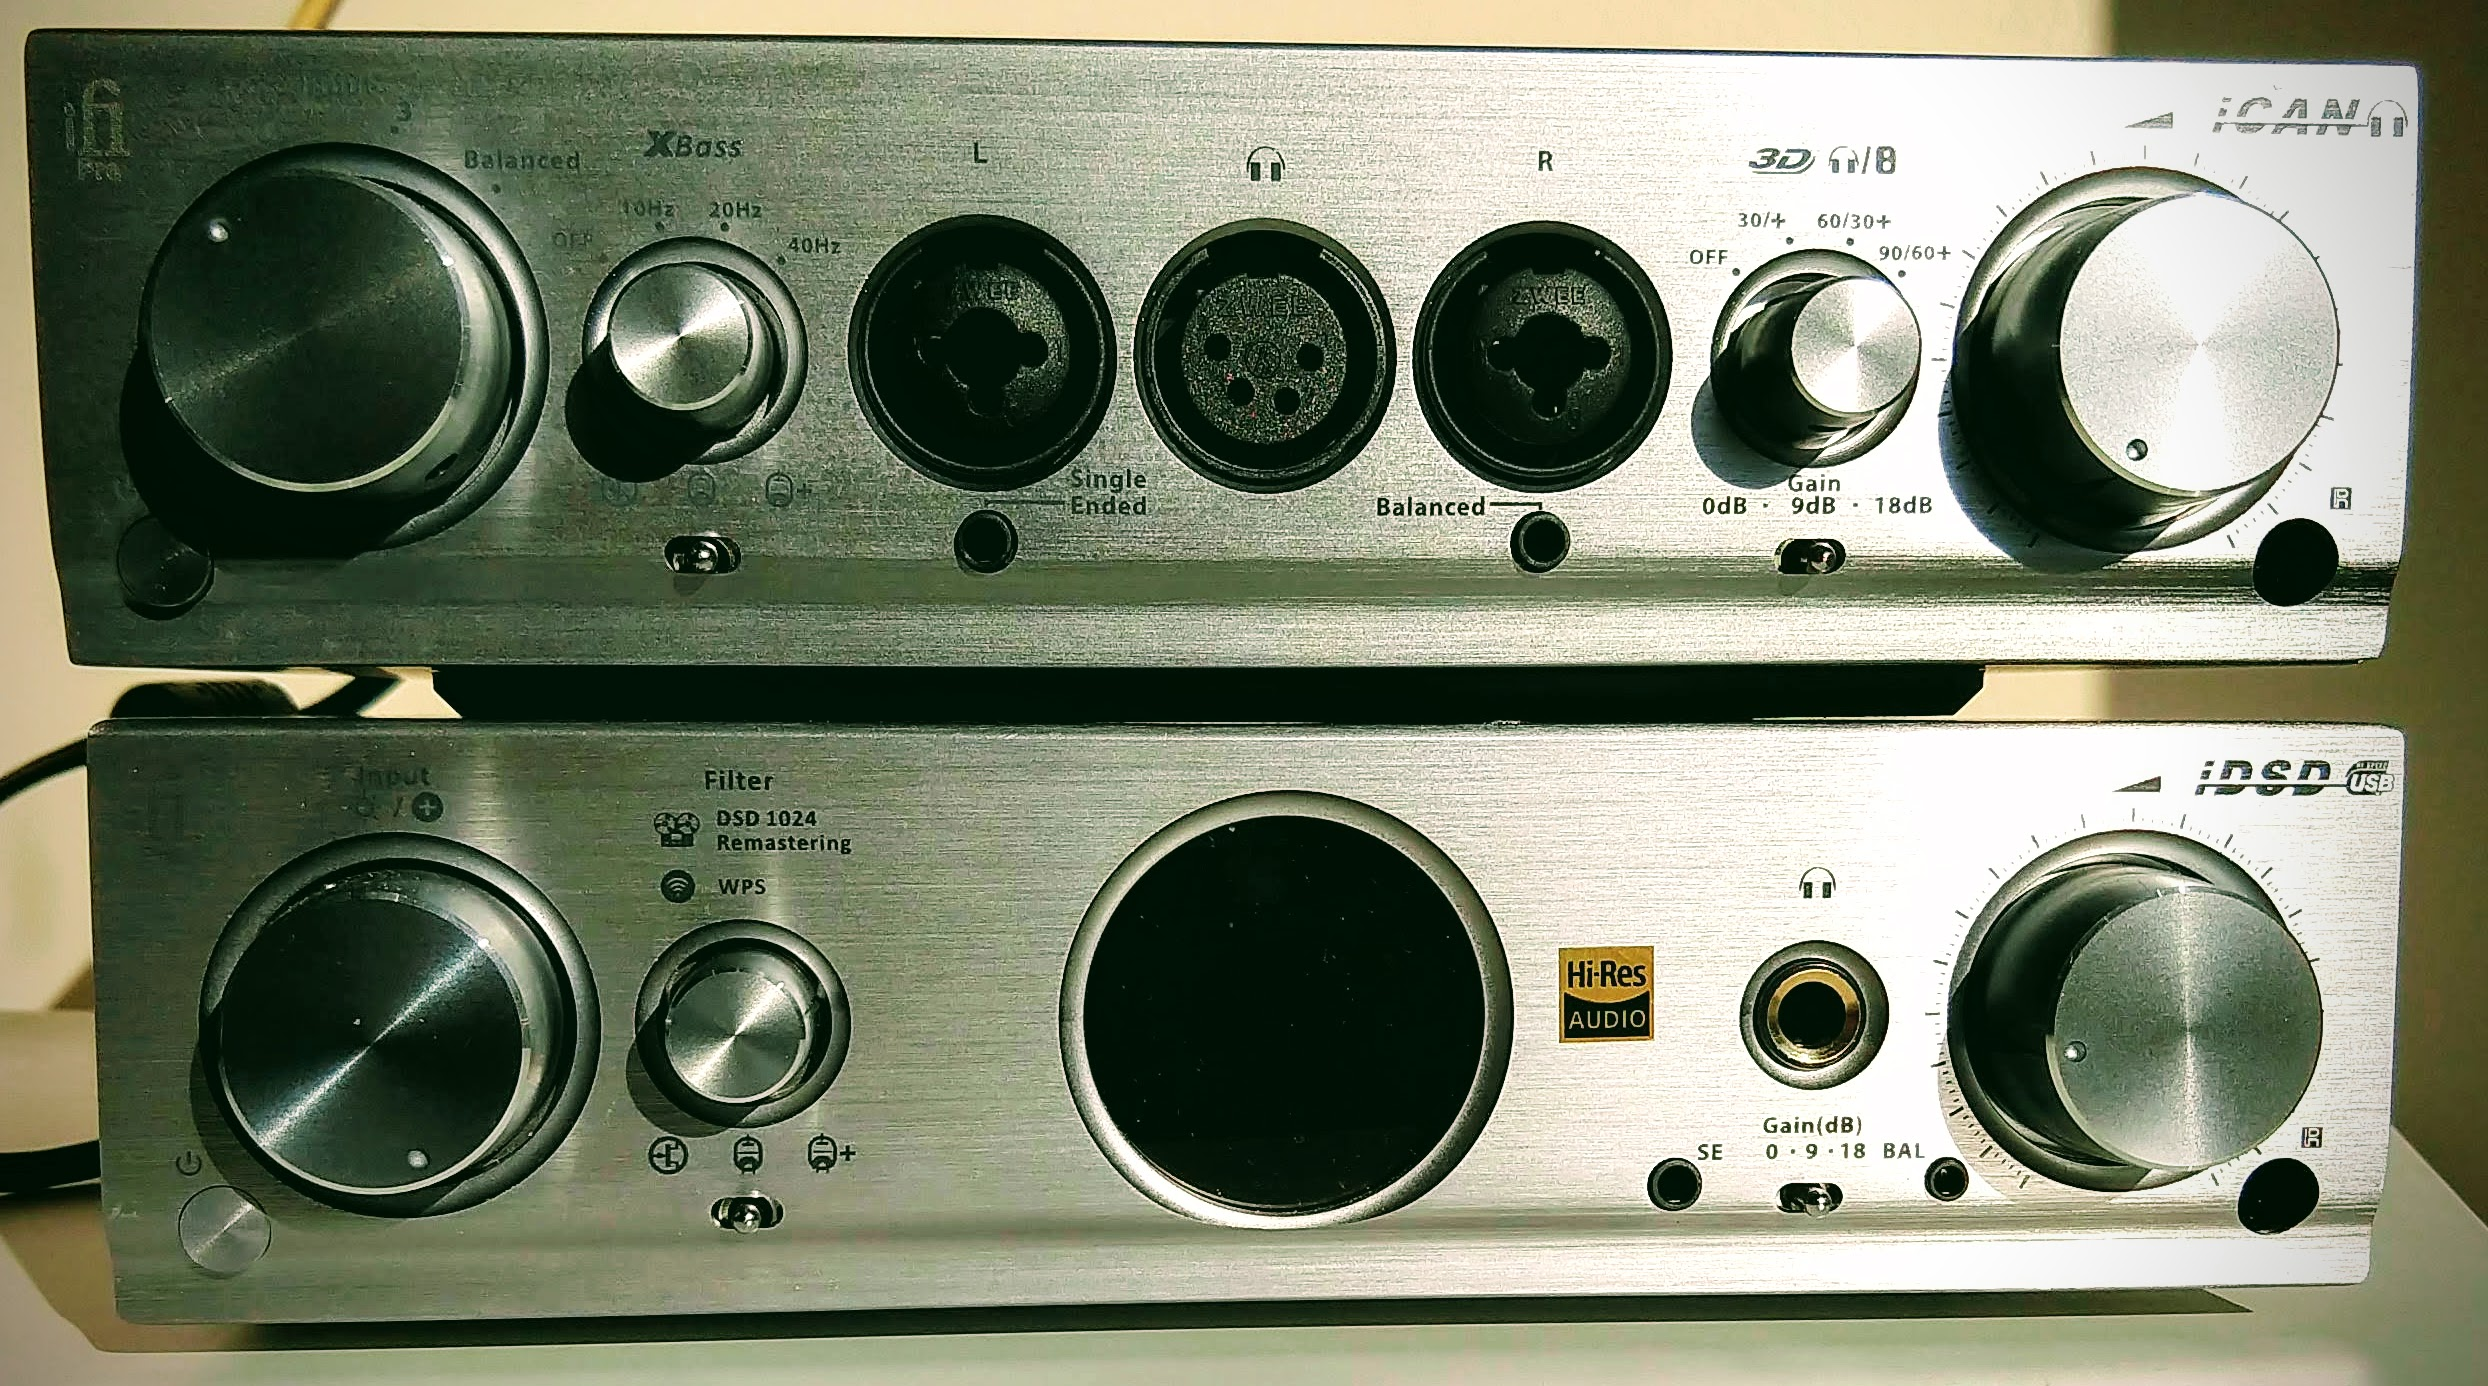 iFi Pro iCAN | Headphone Reviews and Discussion - Head-Fi org